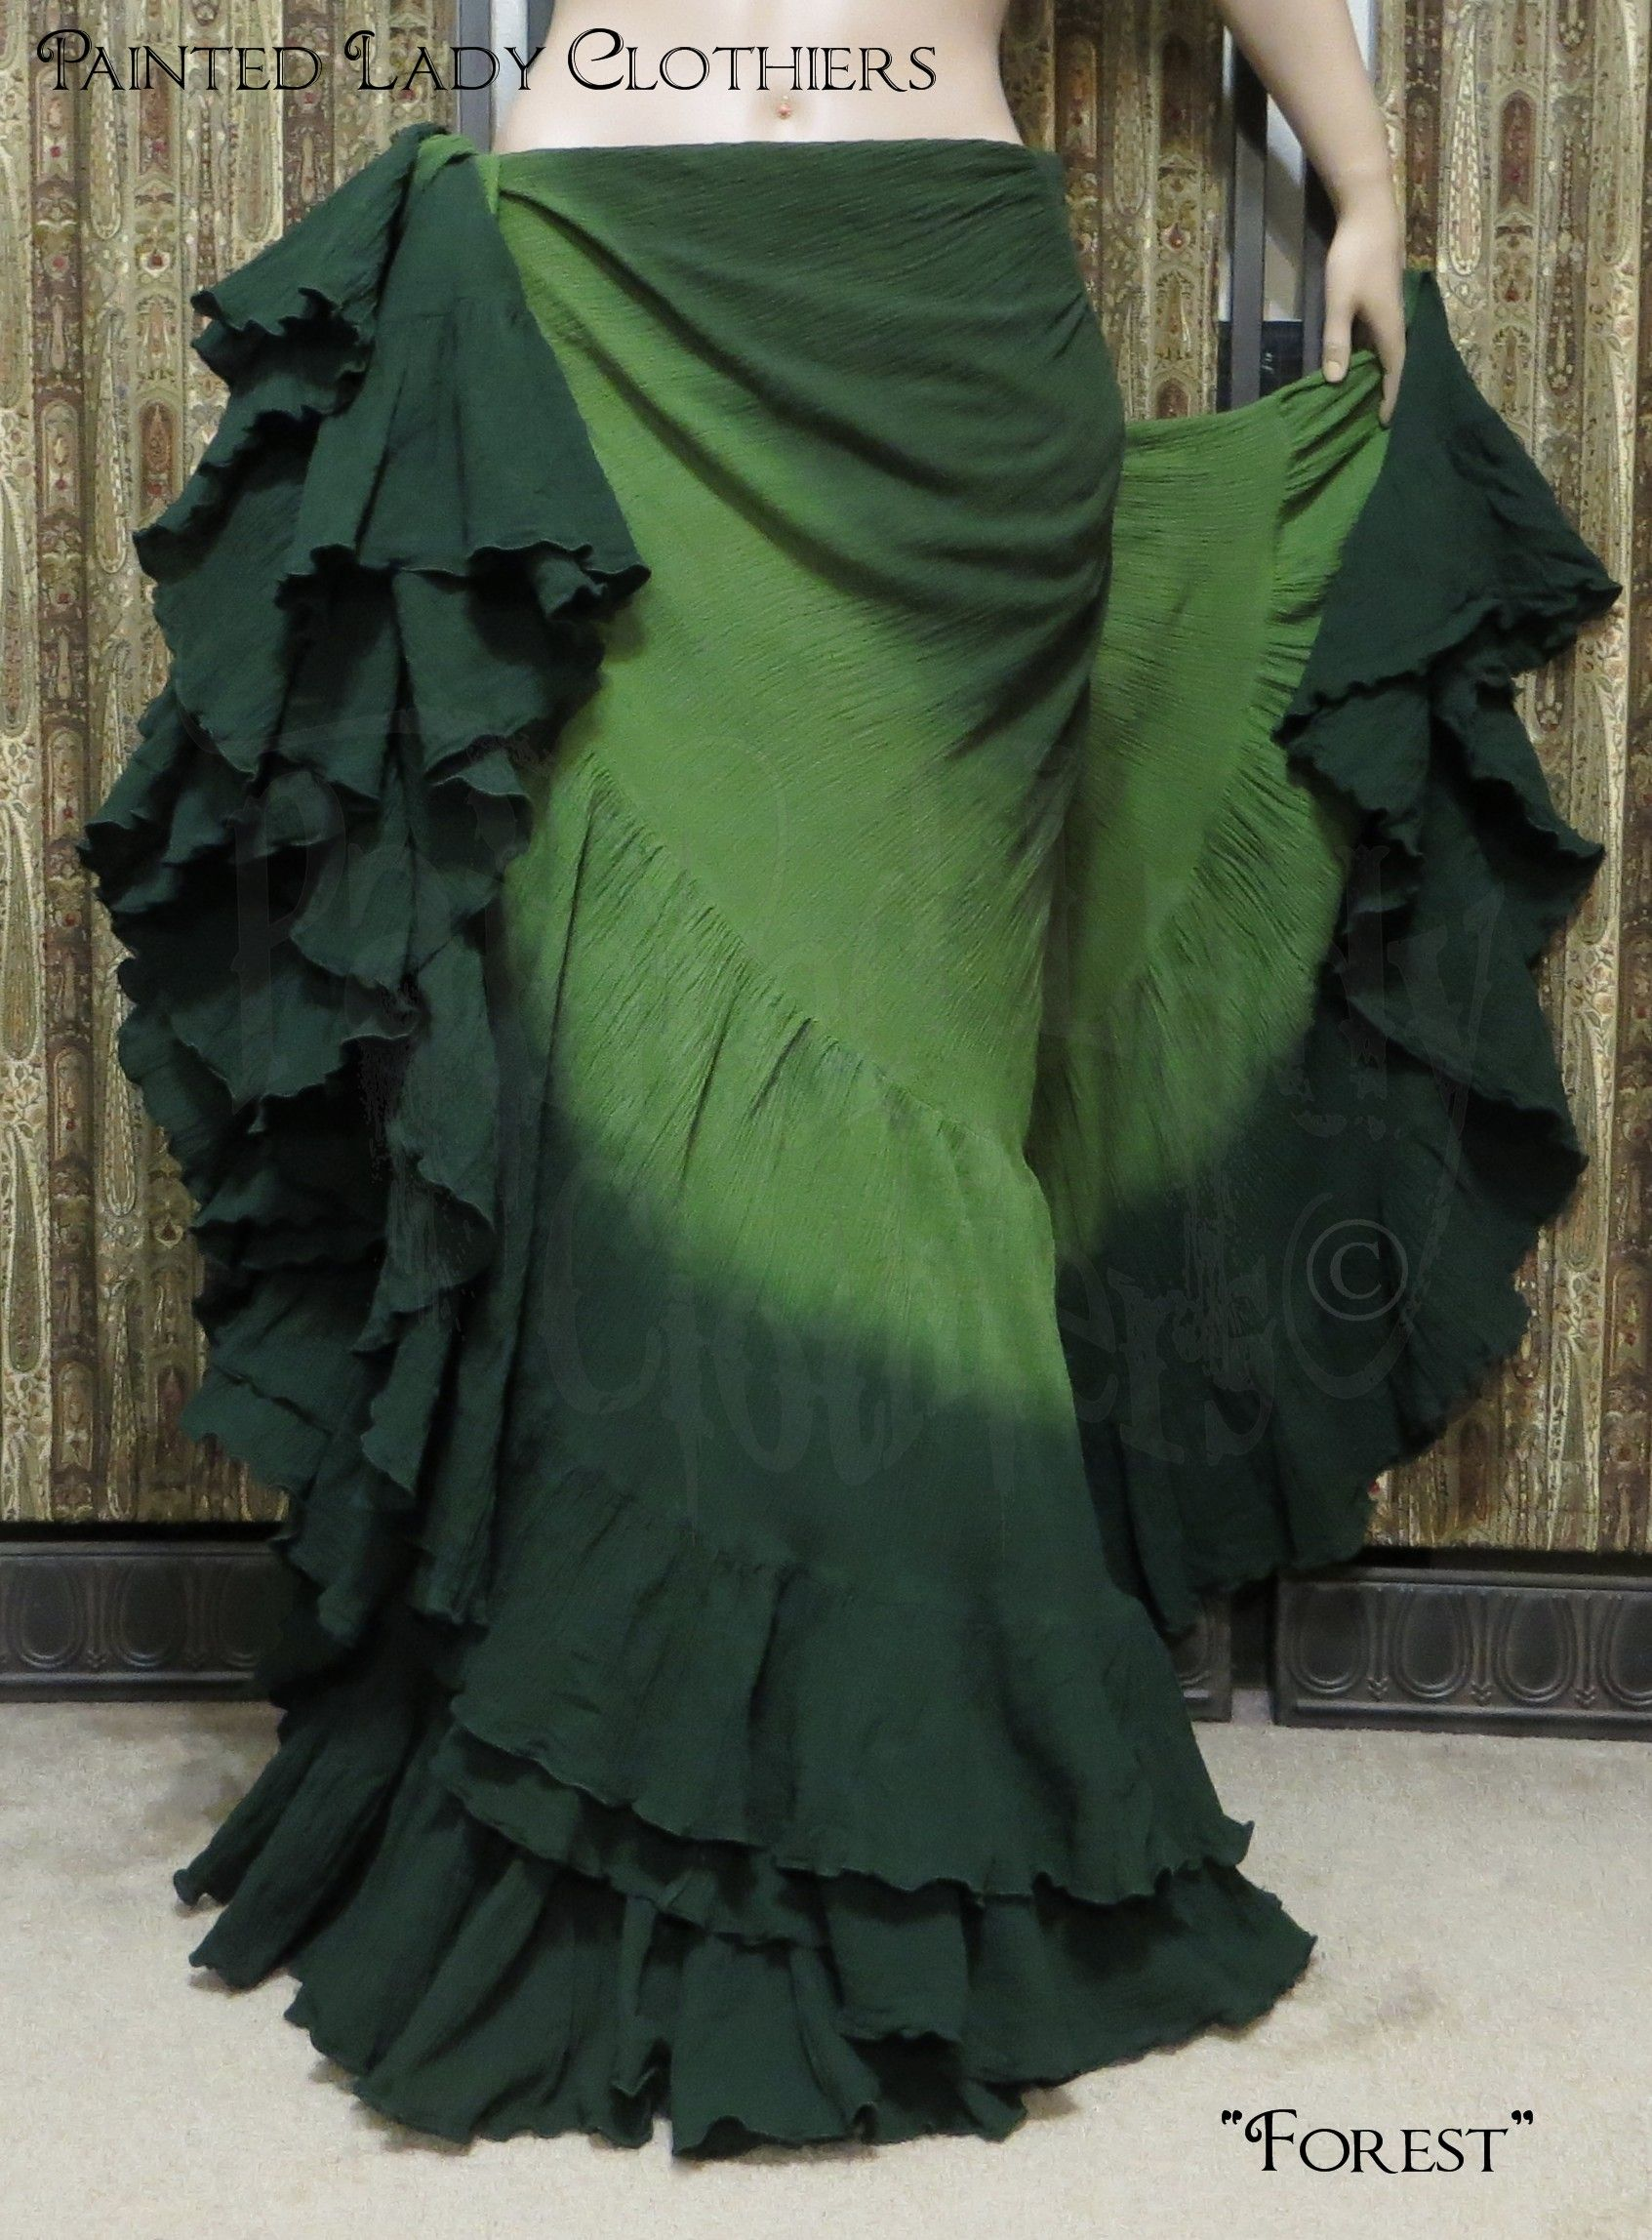 "25 Yard Skirt ""Forest"" color palette by Painted Lady Clothiers  http://www.paintedladyemporium.com/Shop-Here.html"